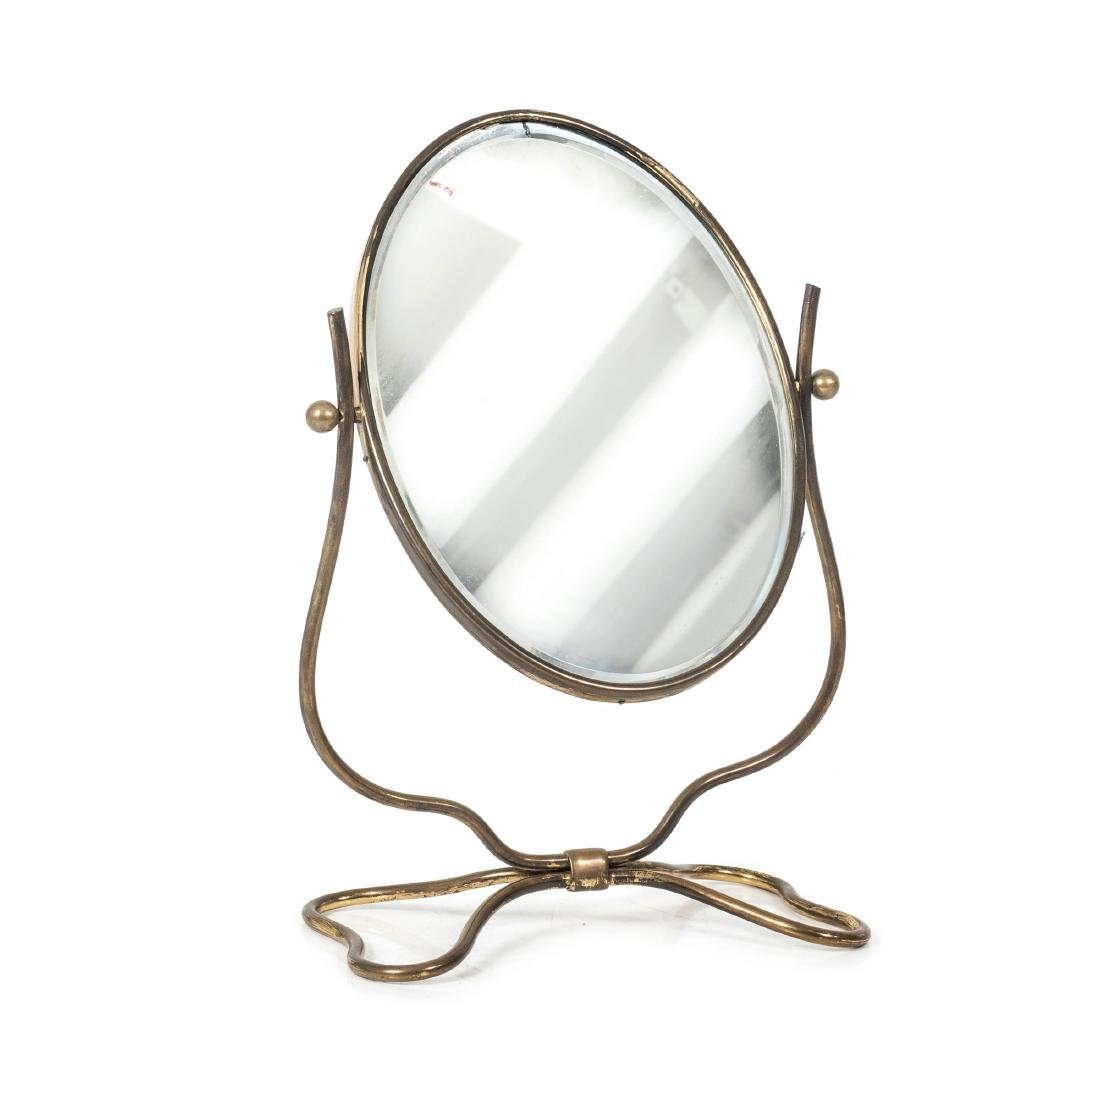 Table mirror, c. 1950